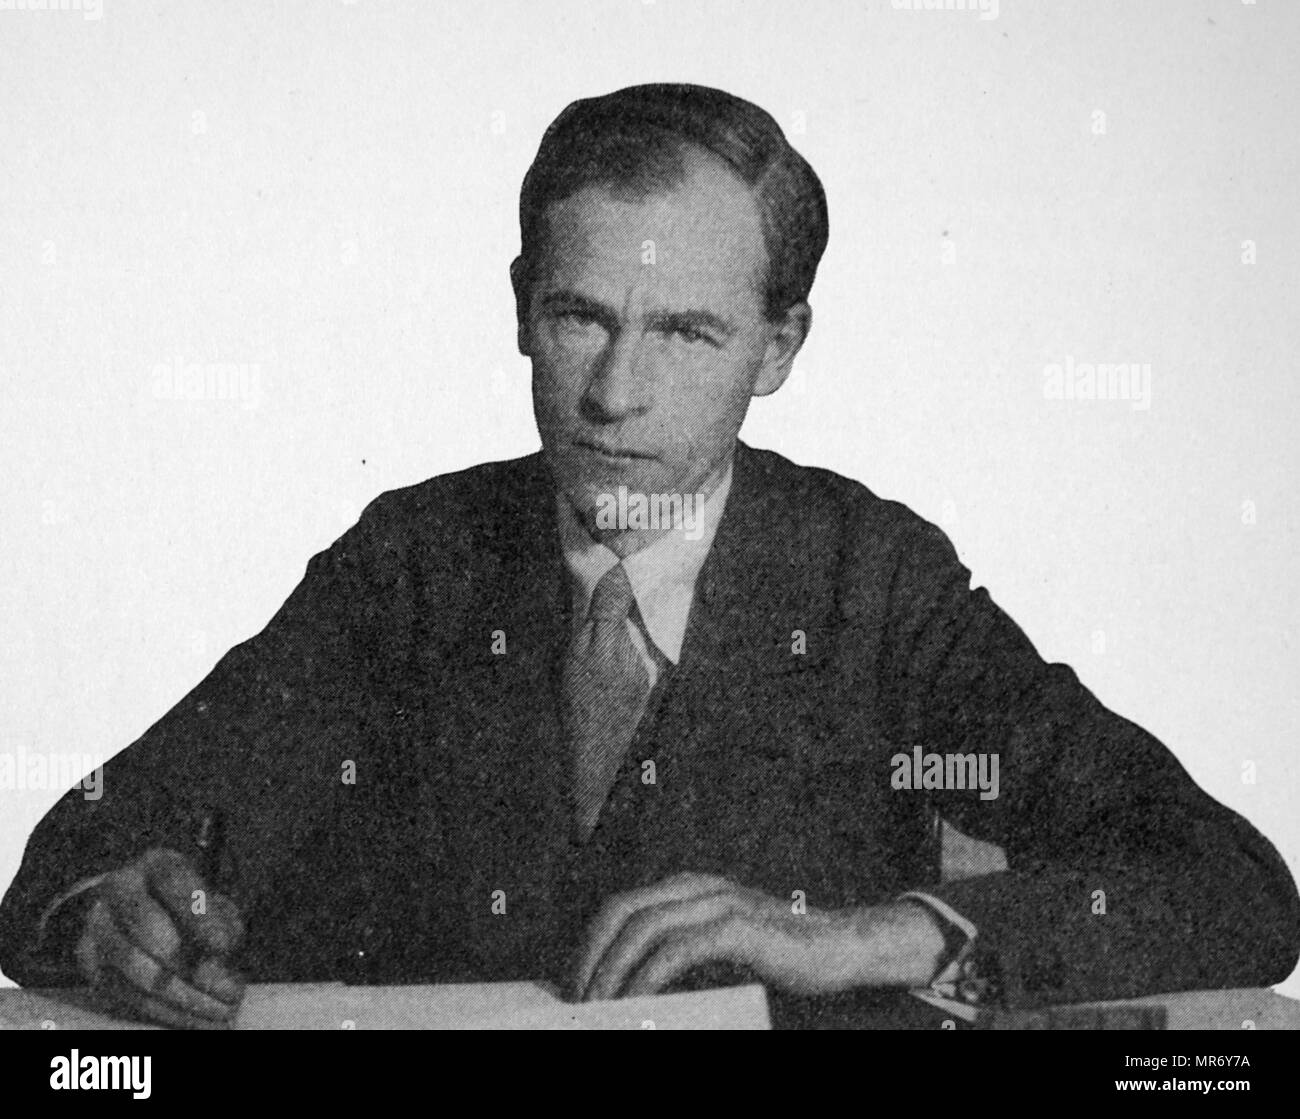 George Douglas Howard Cole (25 September 1889 – 14 January 1959) was an English political theorist, economist, writer and historian. As a libertarian socialist he was a long-time member of the Fabian Society and an advocate for the co-operative movement. - Stock Image